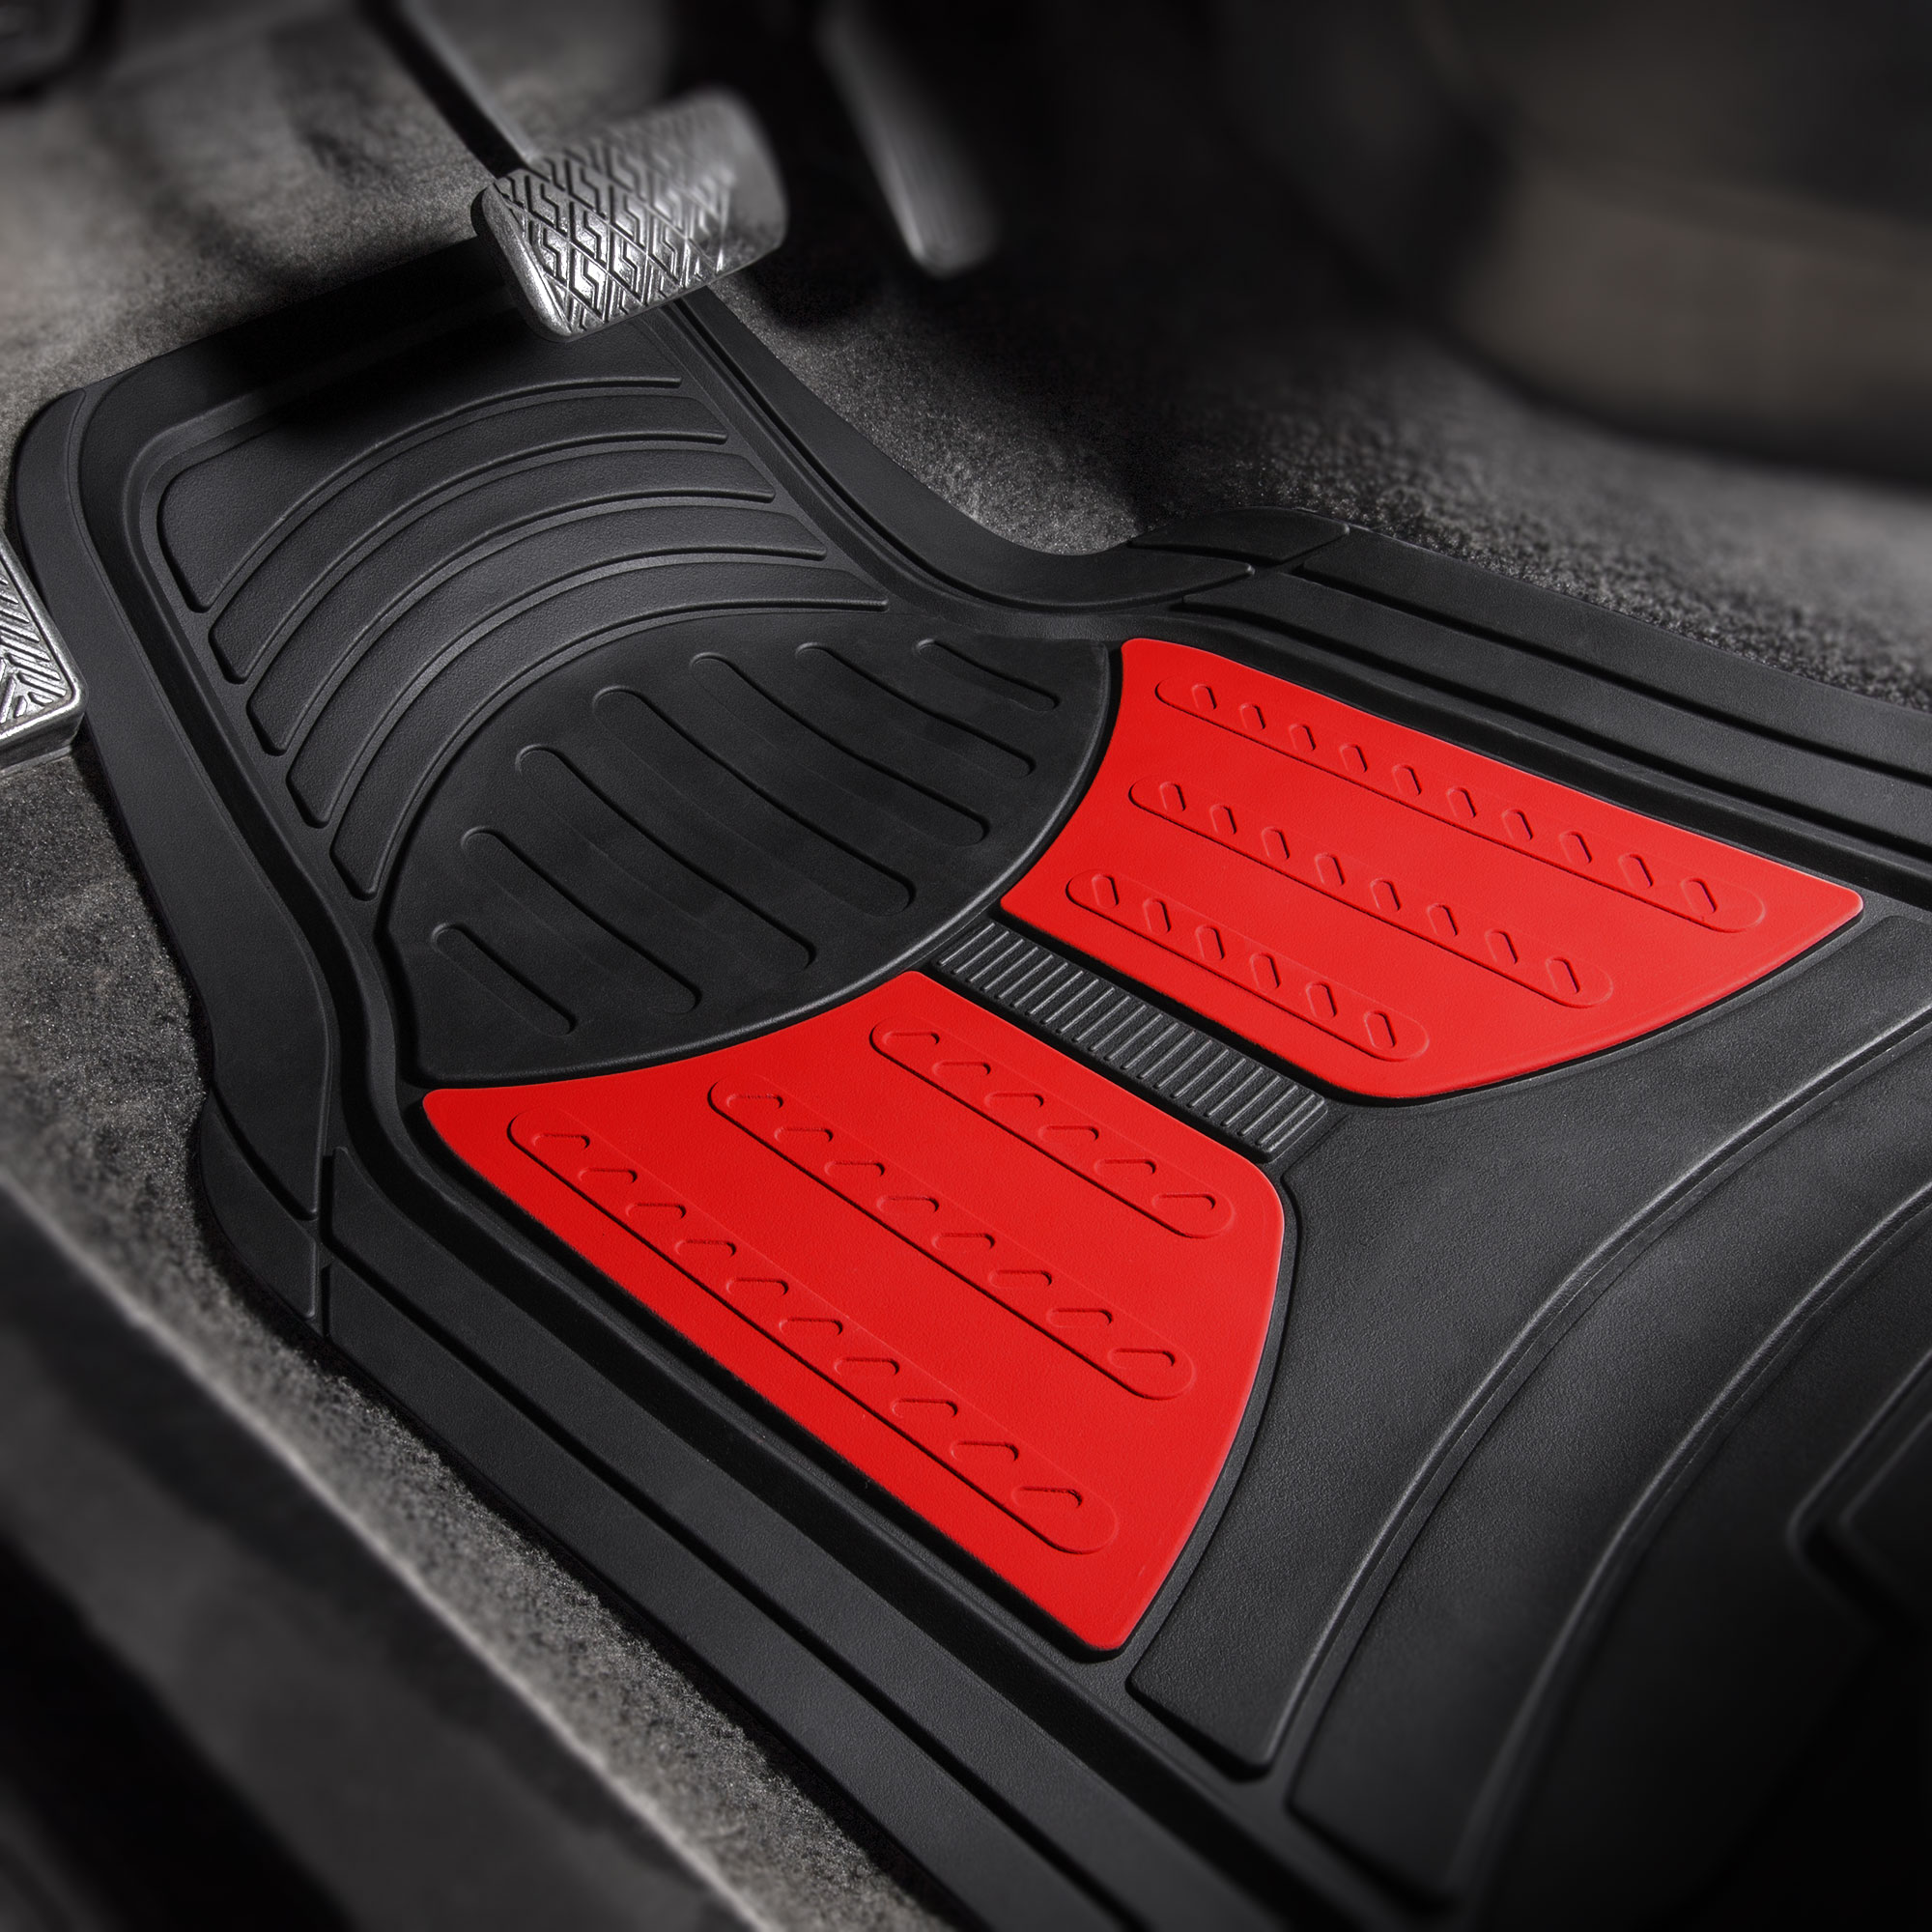 Car-Floor-Mats-for-All-Weather-Rubber-2-Tone-Design-4pc-Set-Heavy-Duty thumbnail 34